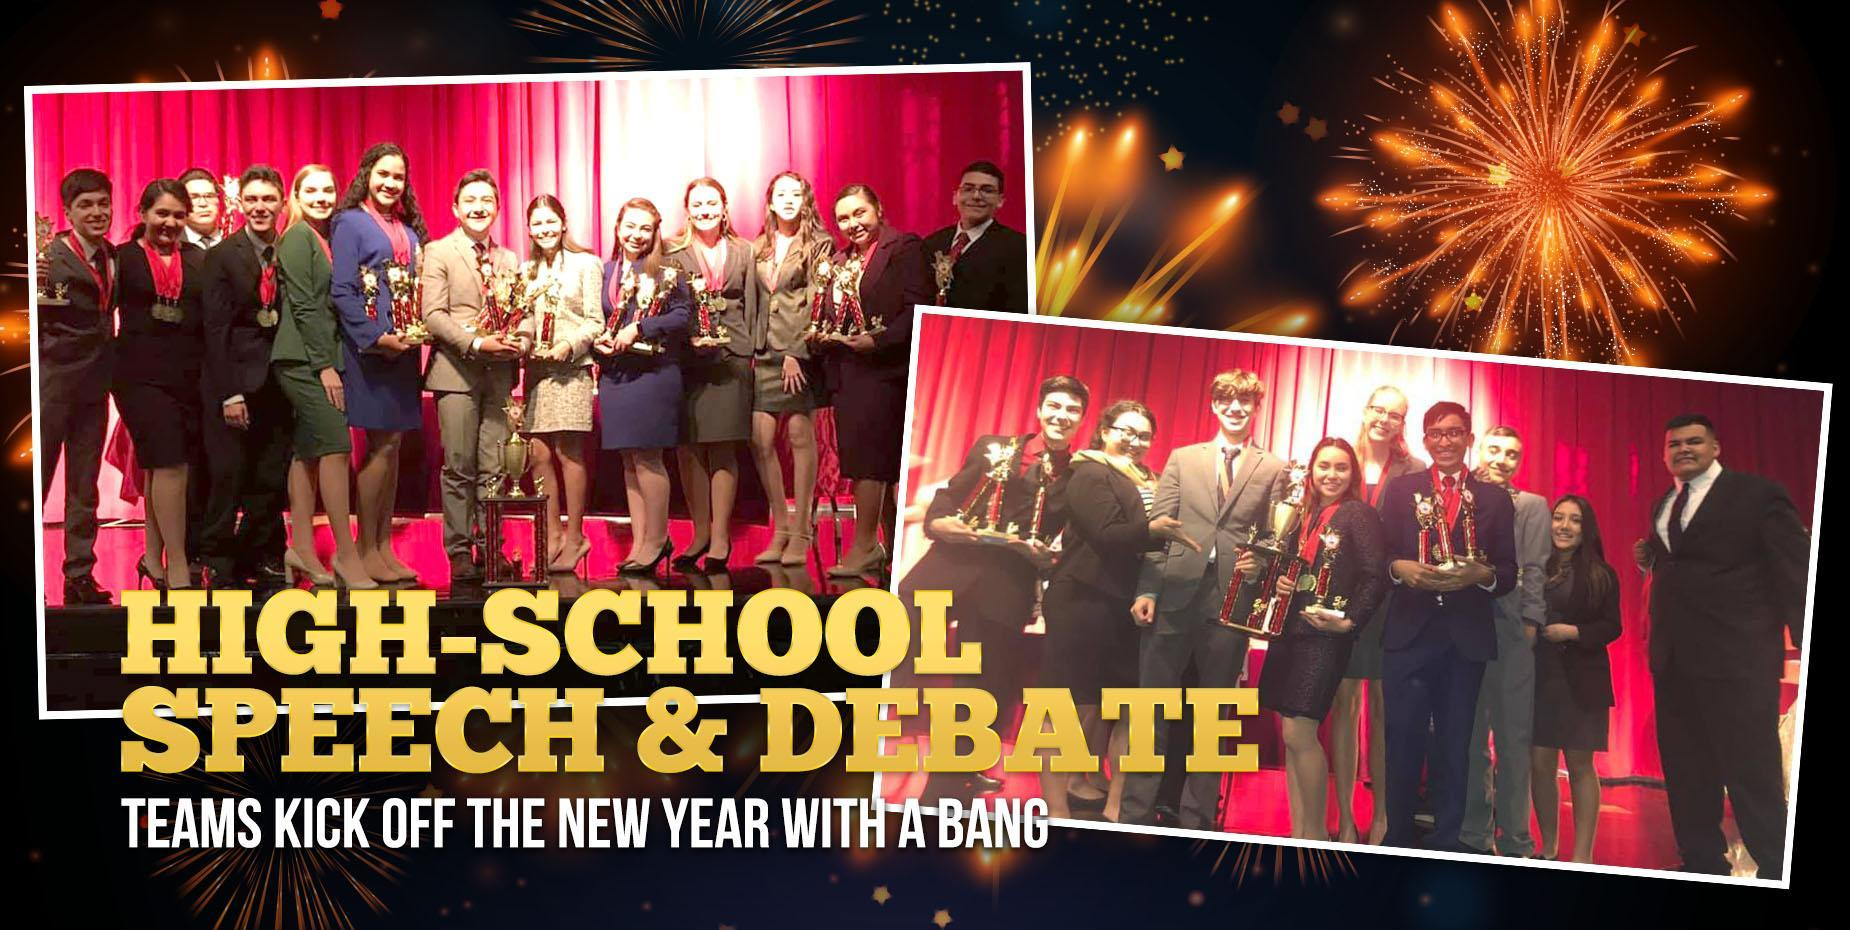 High-school Speech and Debate teams kick off the new year with a bang